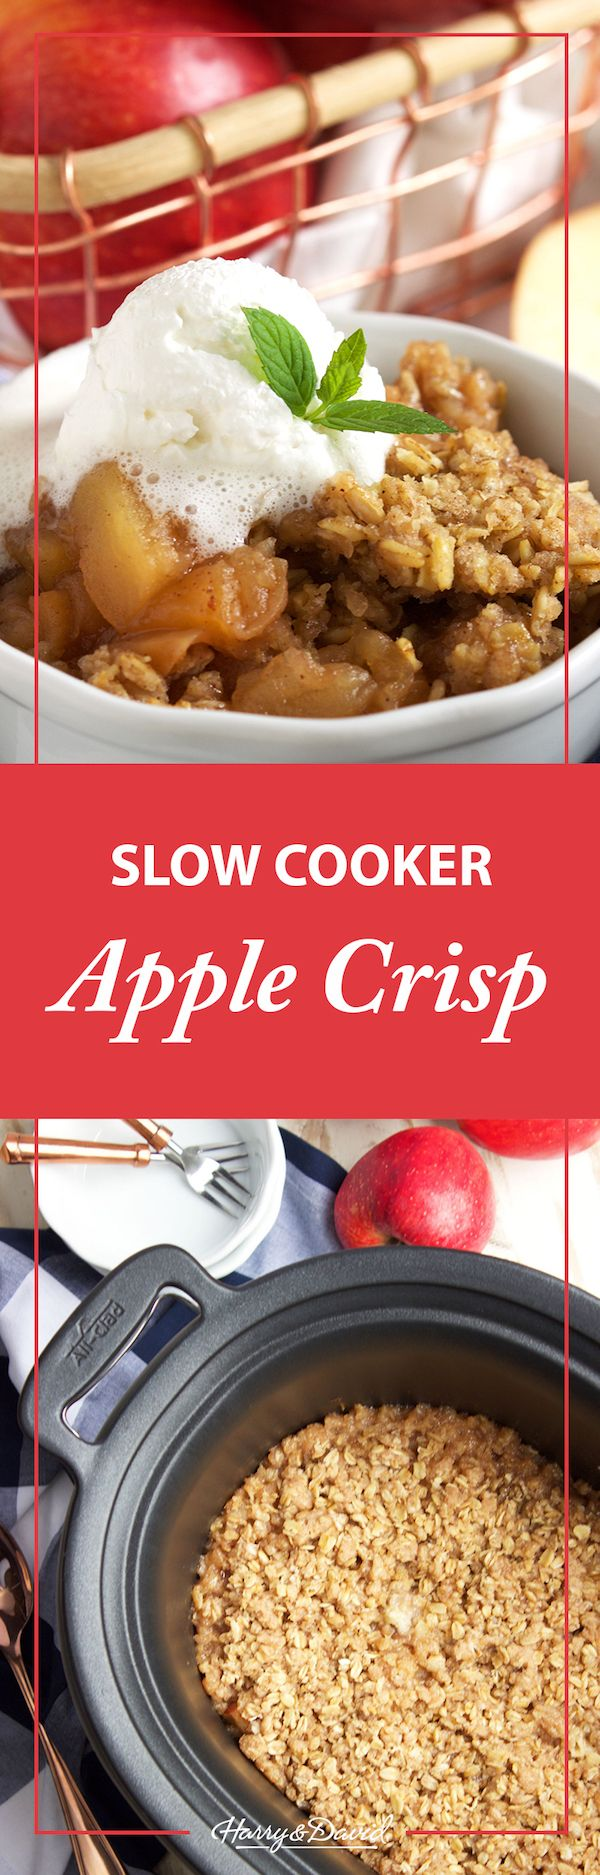 Slow Cooker Apple Crisp recipe. We love the seasonal fall flavors in this easy-to-make dessert. Throw it all in a slow cooker and free up your oven for everything else this holiday season!